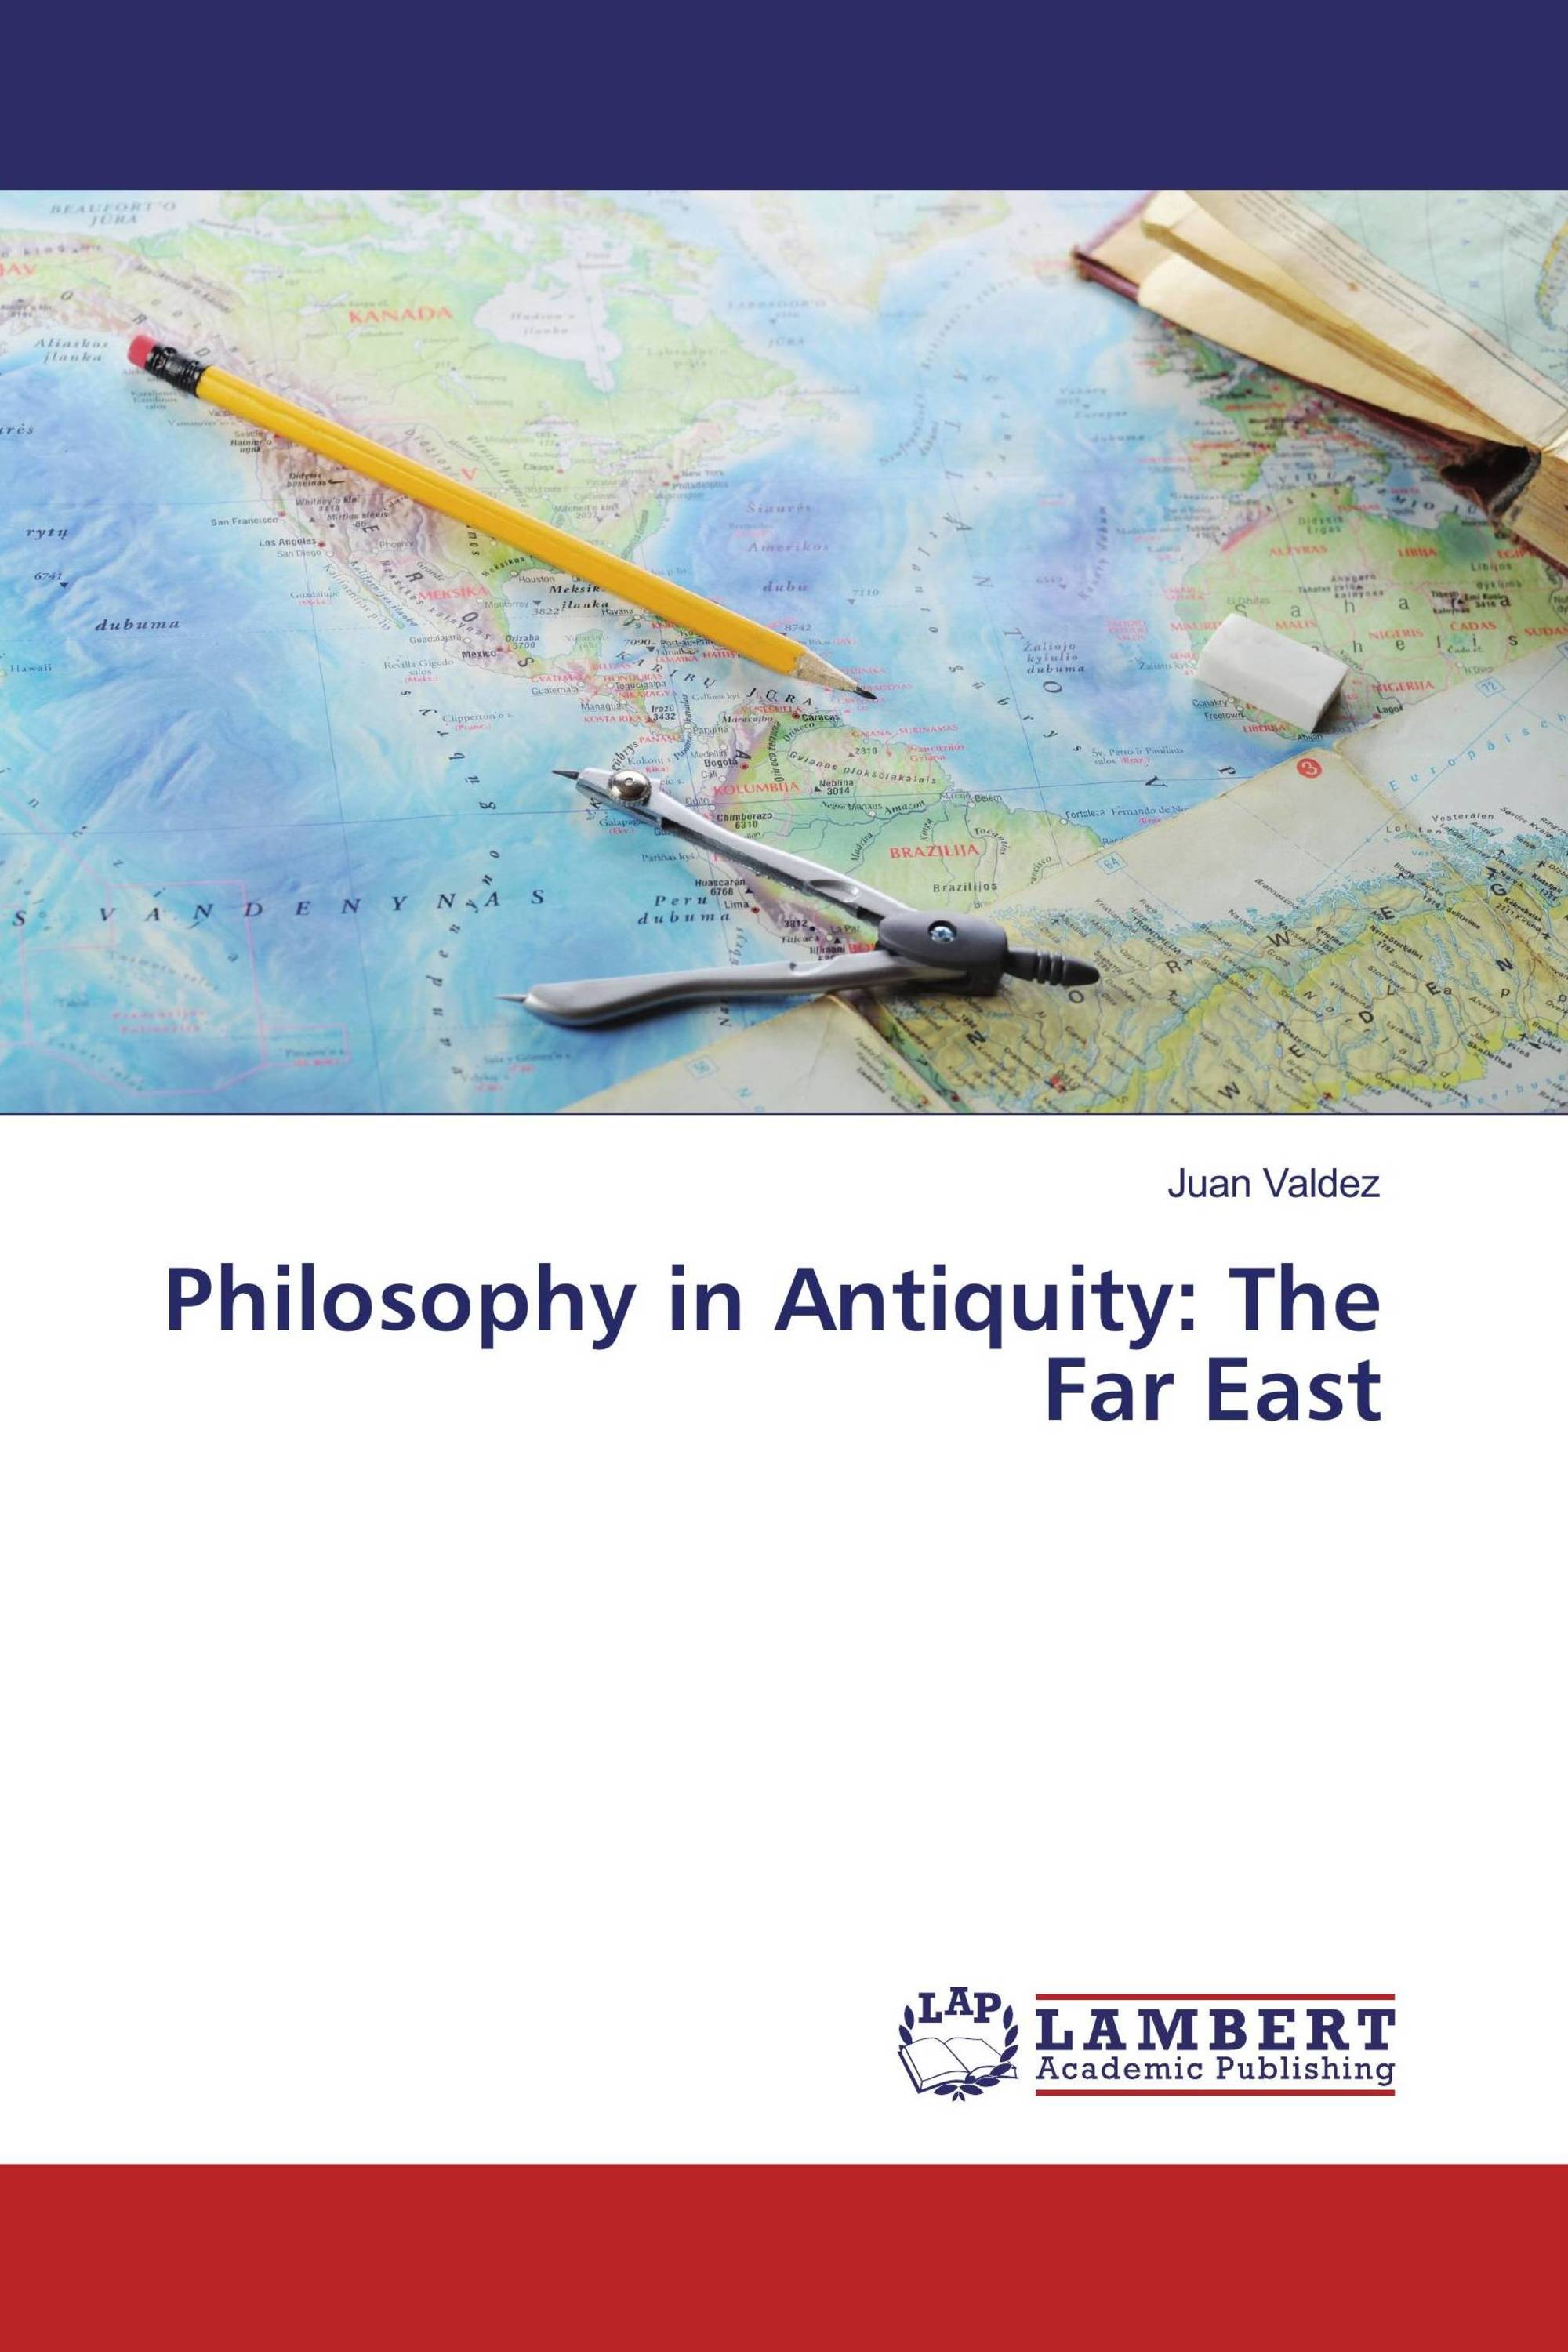 Philosophy in Antiquity: The Far East